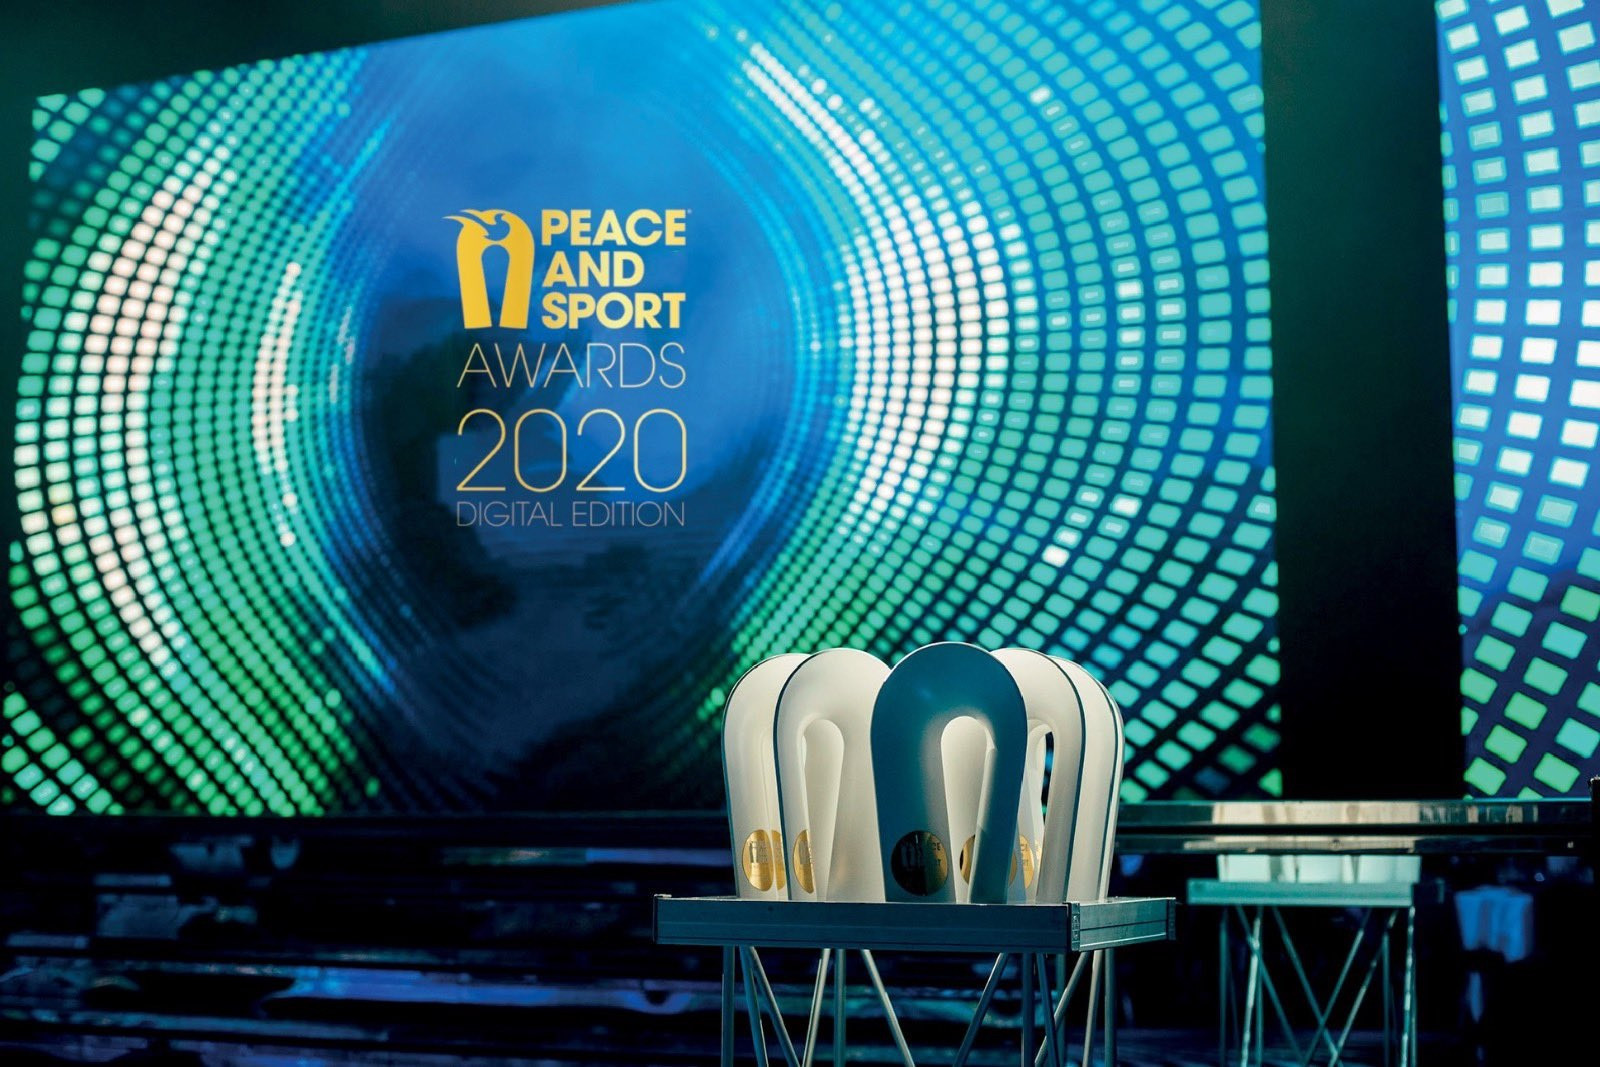 The winner of each Peace and Sport Awards category are set to be revealed from December 14 to 18 ©Peace and Sport